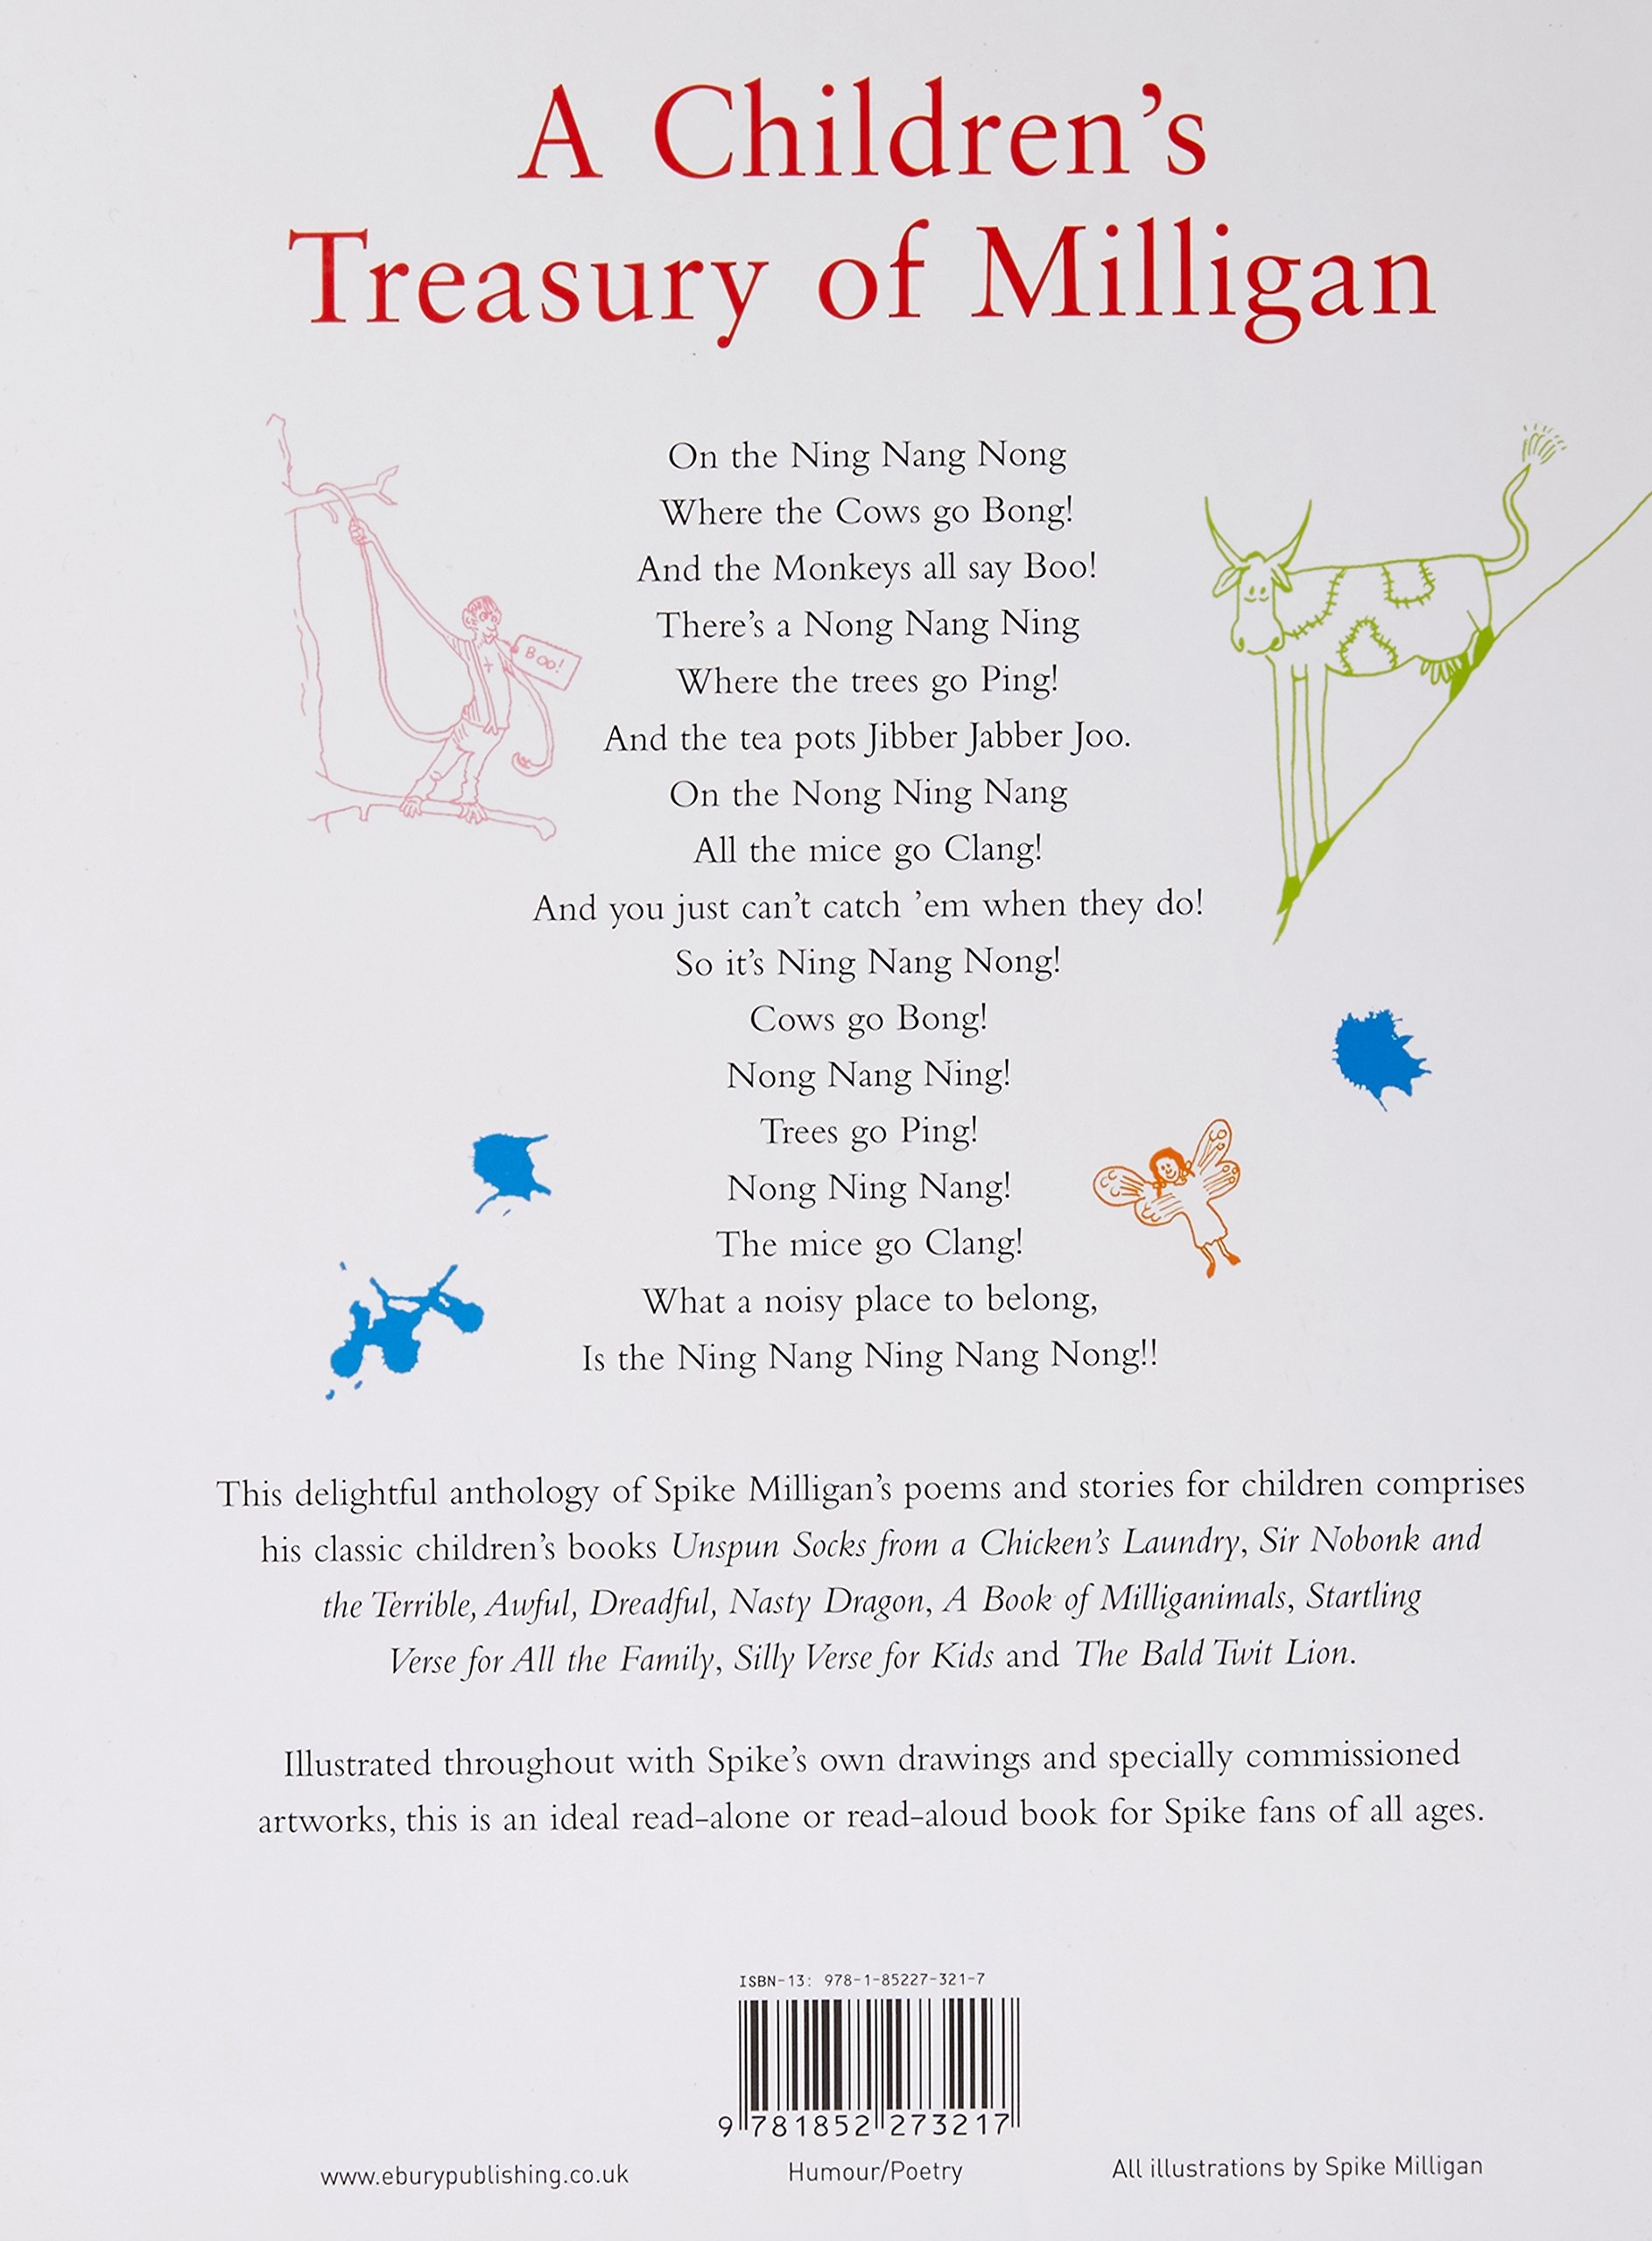 A Children's Treasury of Milligan Classic Stories and Poems by Spike Milligan Synopsis